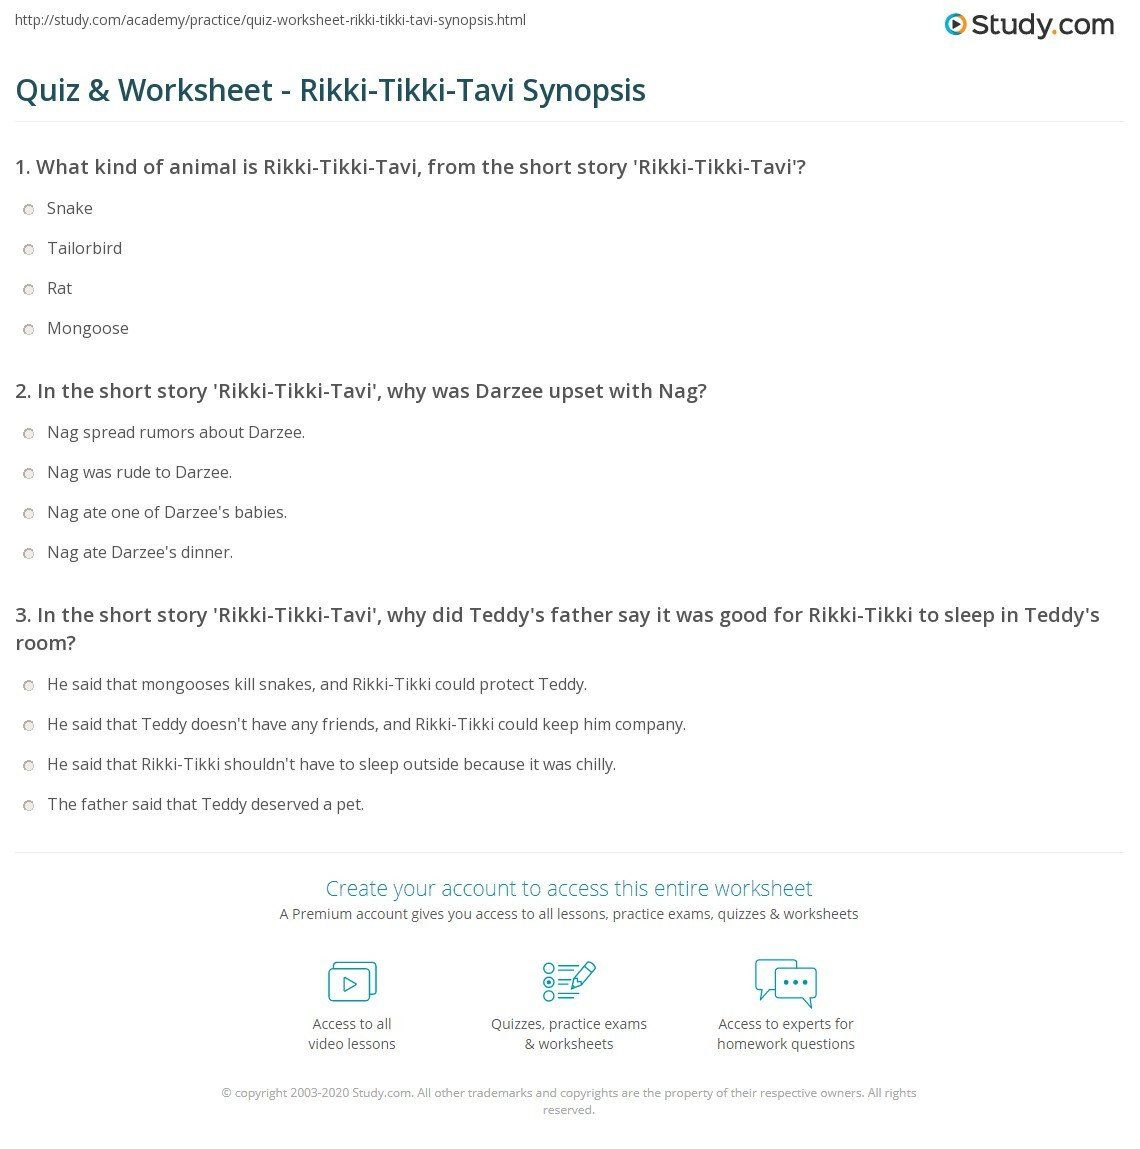 Rikki Tikki Tavi Worksheets Answers Quiz Worksheet Rikki Tikki Tavi Synopsis Translating Algebraic Expressions Worksheets Answers